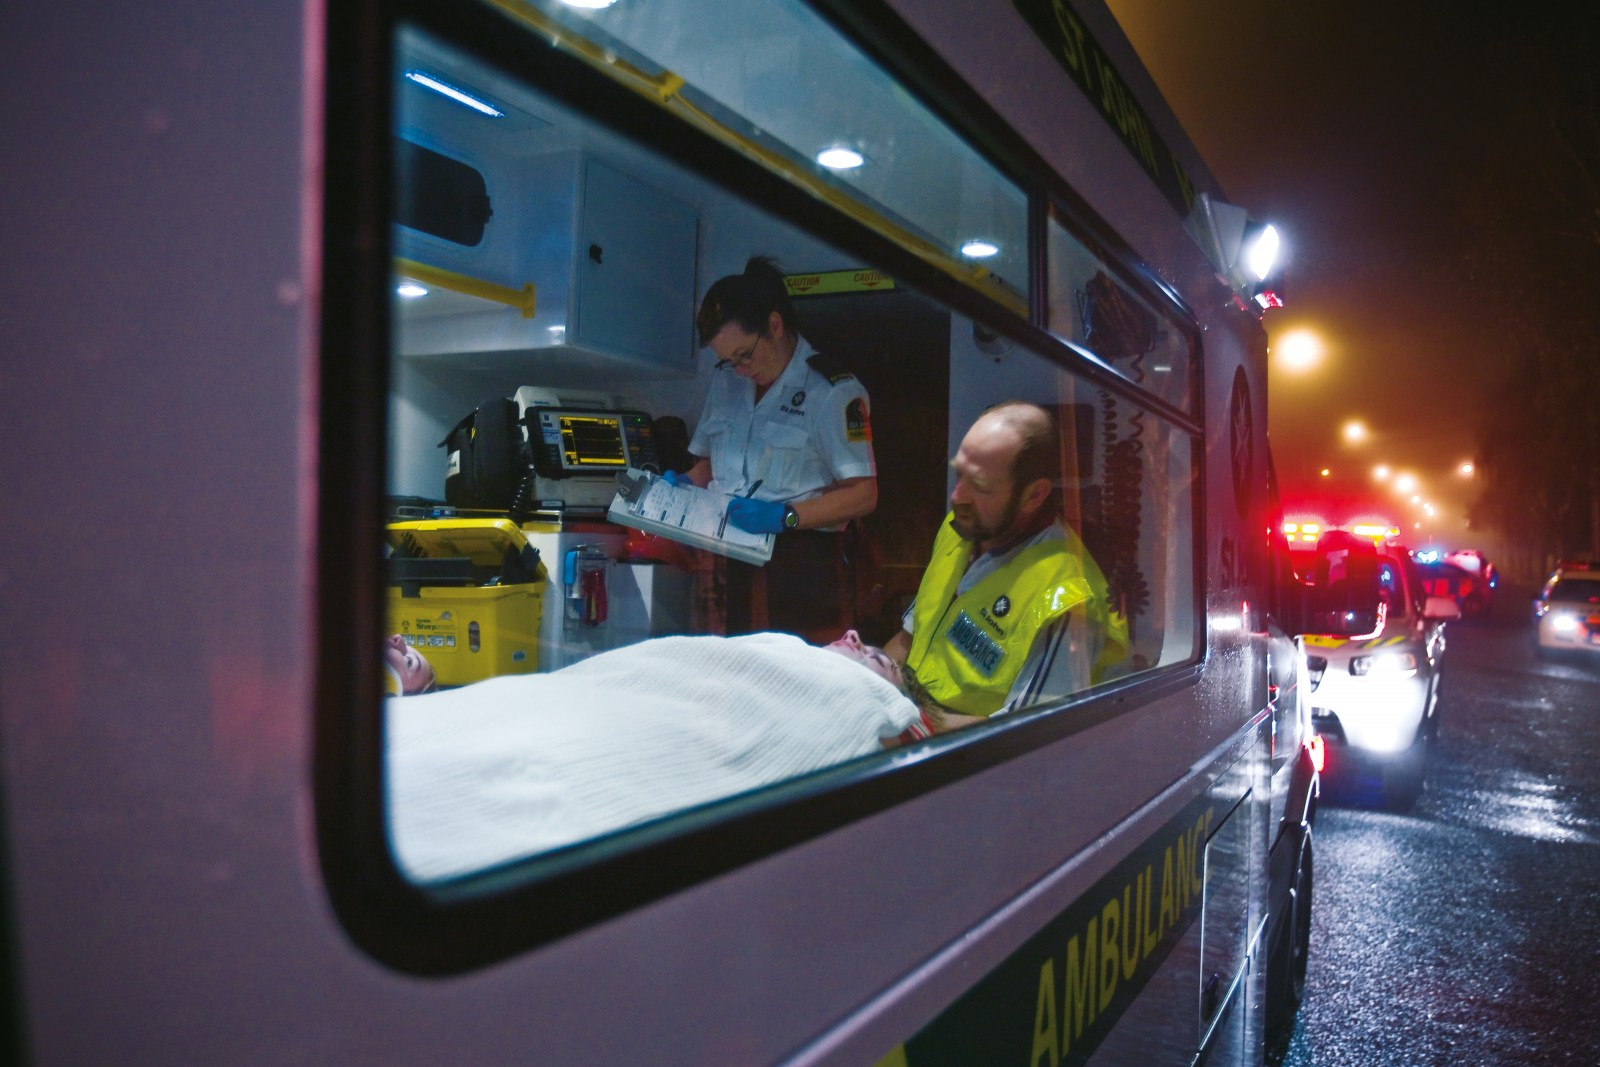 An important task of the paramedics is to ascertain the severity and any possible complications of an injury, reporting them back to hospital so that preparations can be made for the patient's arrival.